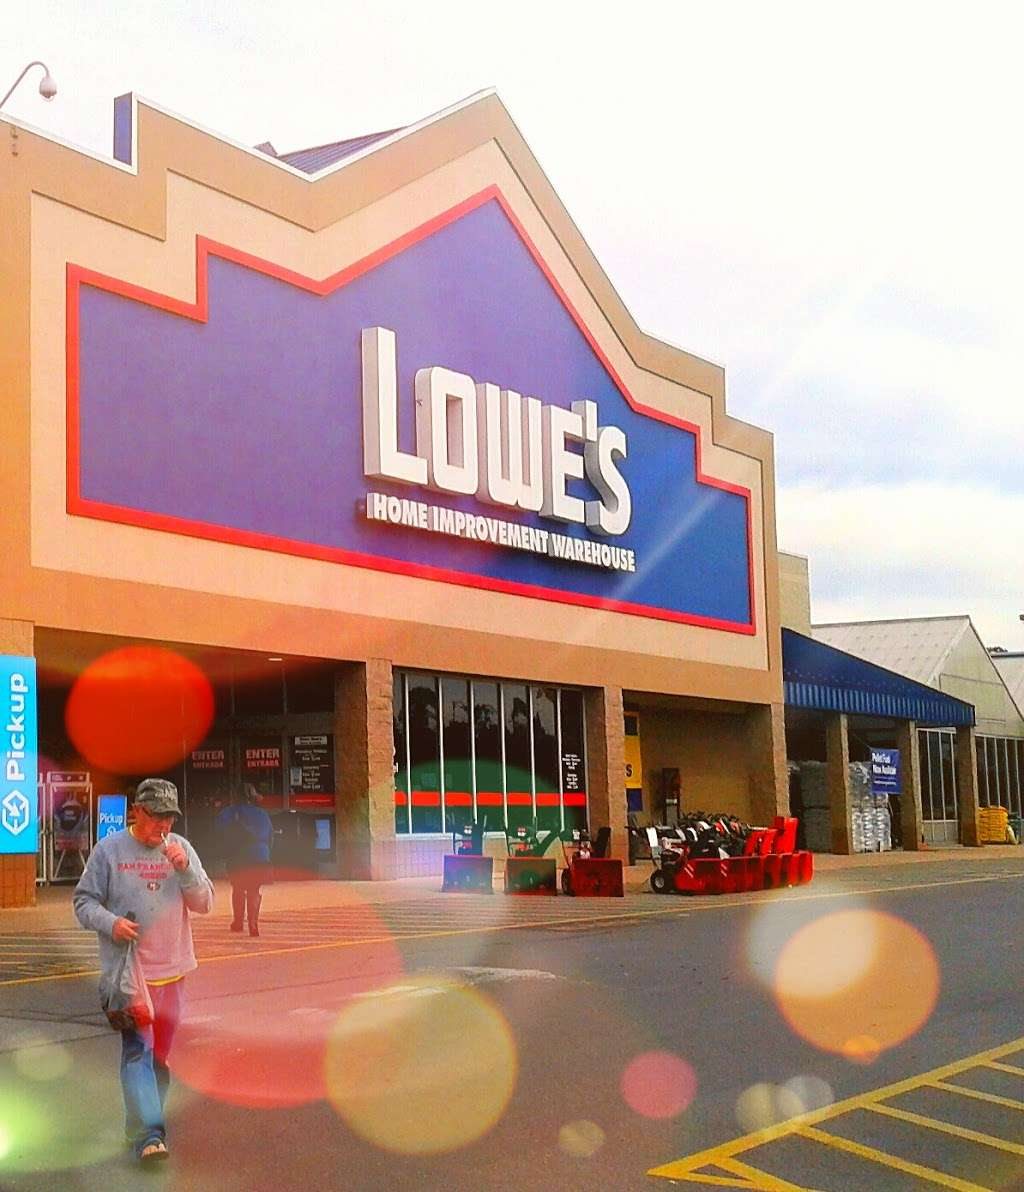 Lowes Home Improvement - hardware store  | Photo 10 of 10 | Address: 1500 Wesel Blvd, Hagerstown, MD 21740, USA | Phone: (301) 766-7200